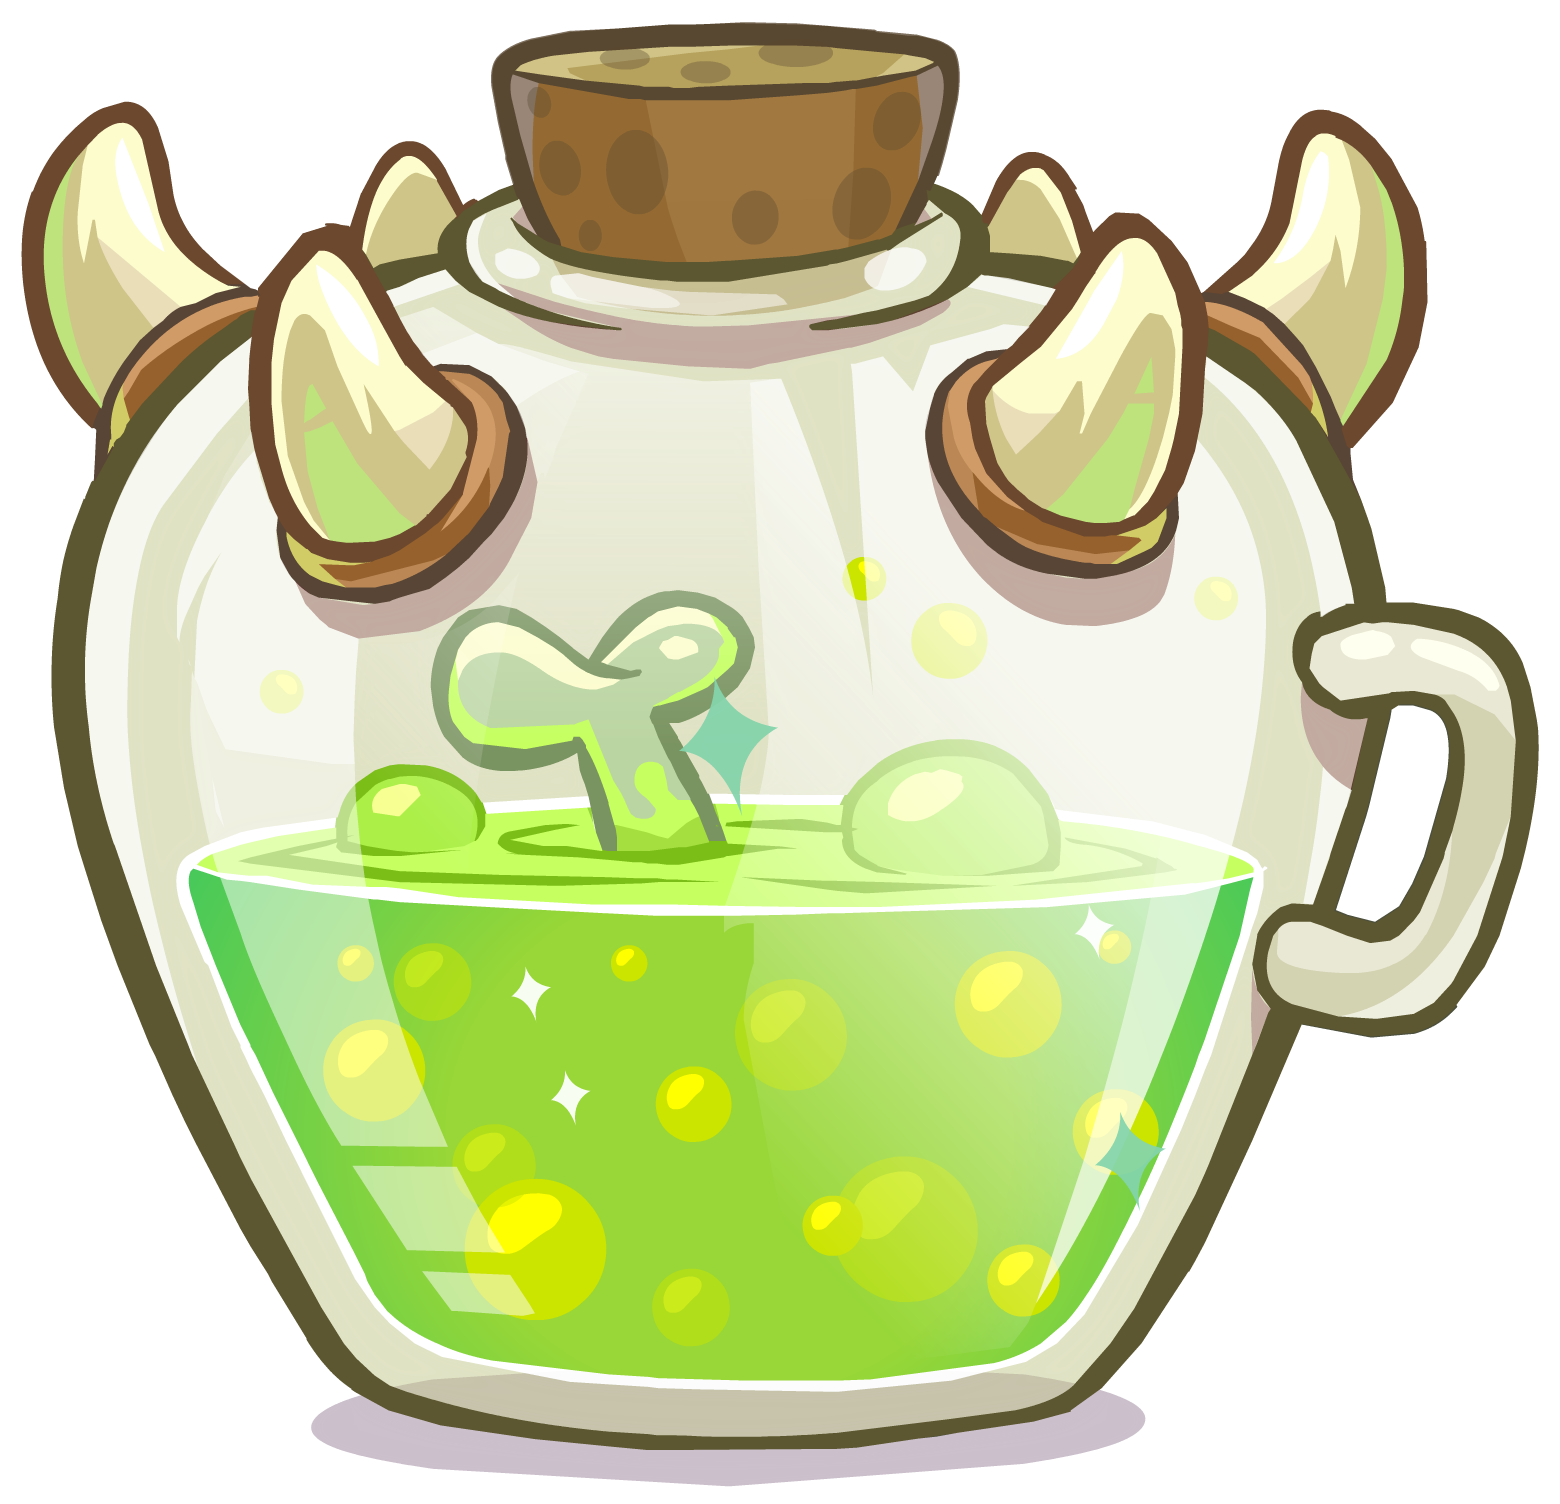 Image potions orge size. September clipart medieval food